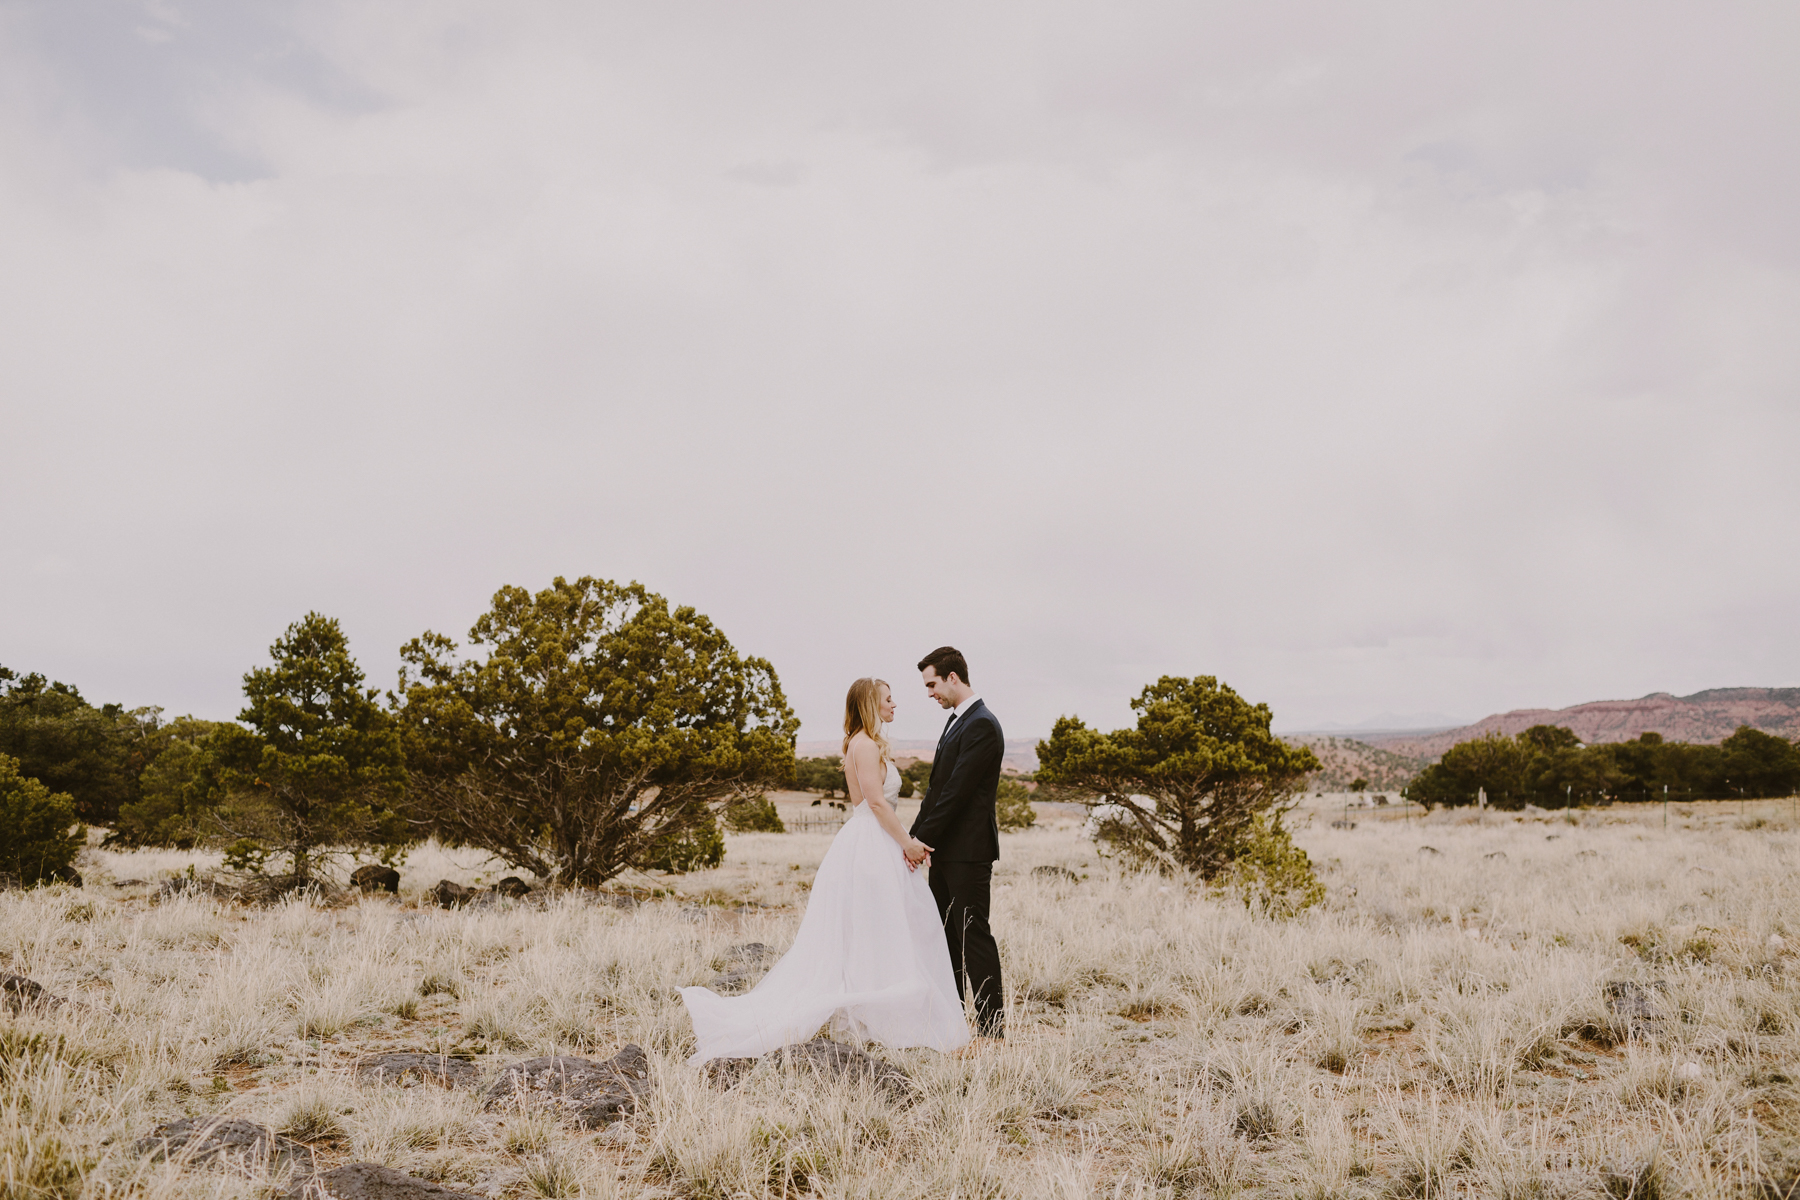 Couple holding hands on their wedding day in southern utah